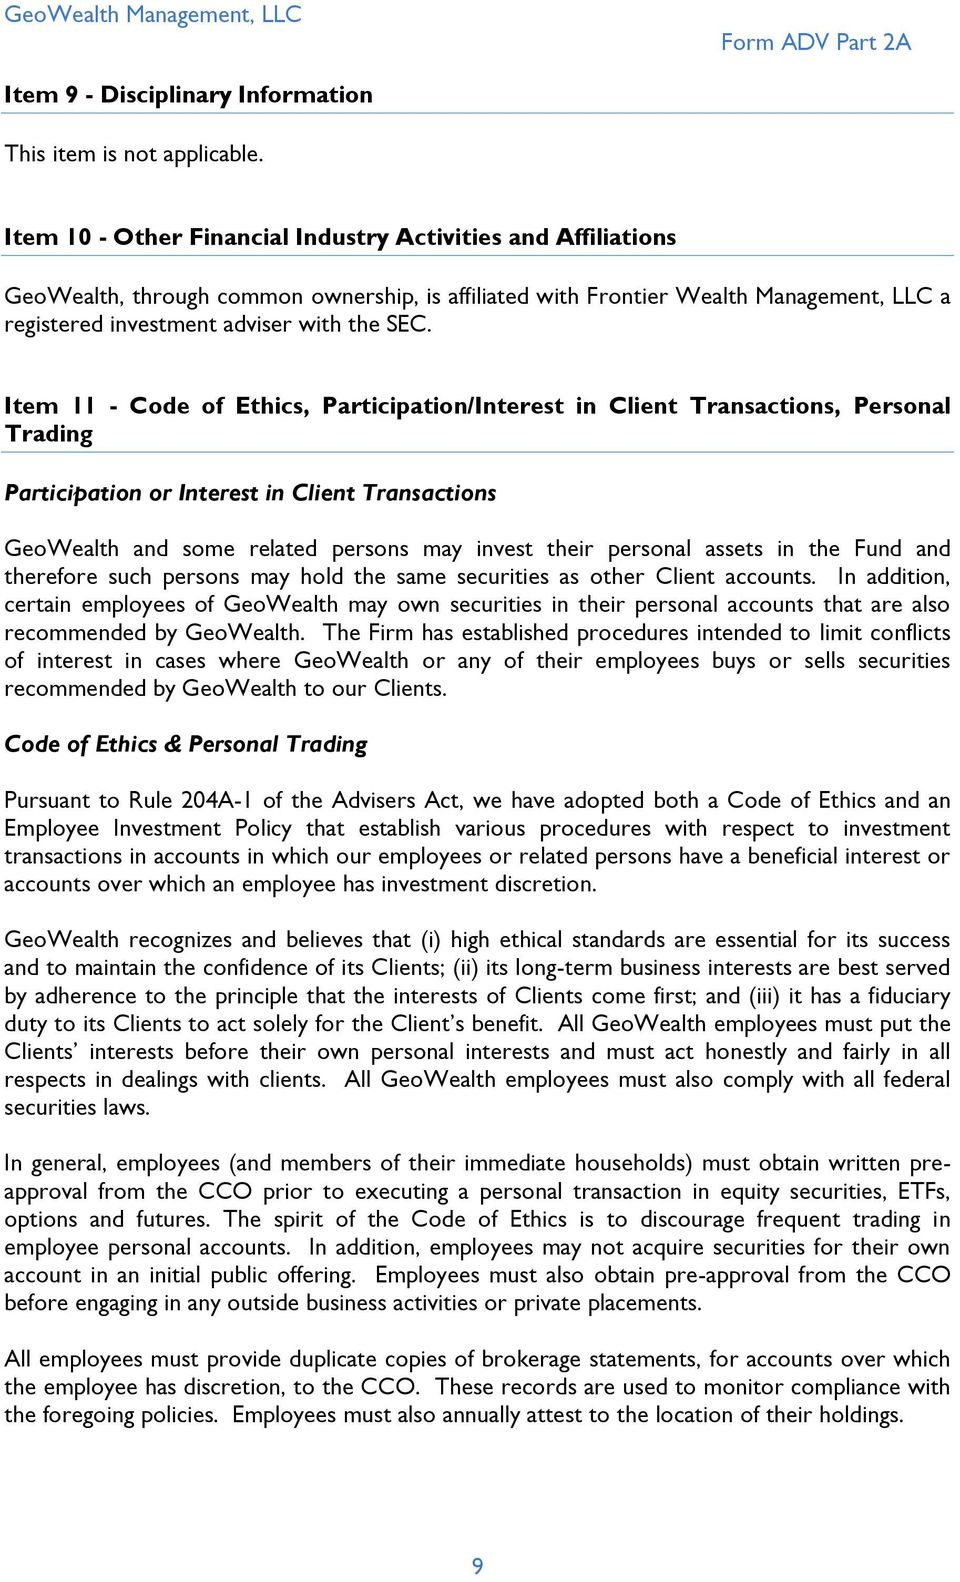 Item 11 - Code of Ethics, Participation/Interest in Client Transactions, Personal Trading Participation or Interest in Client Transactions GeoWealth and some related persons may invest their personal